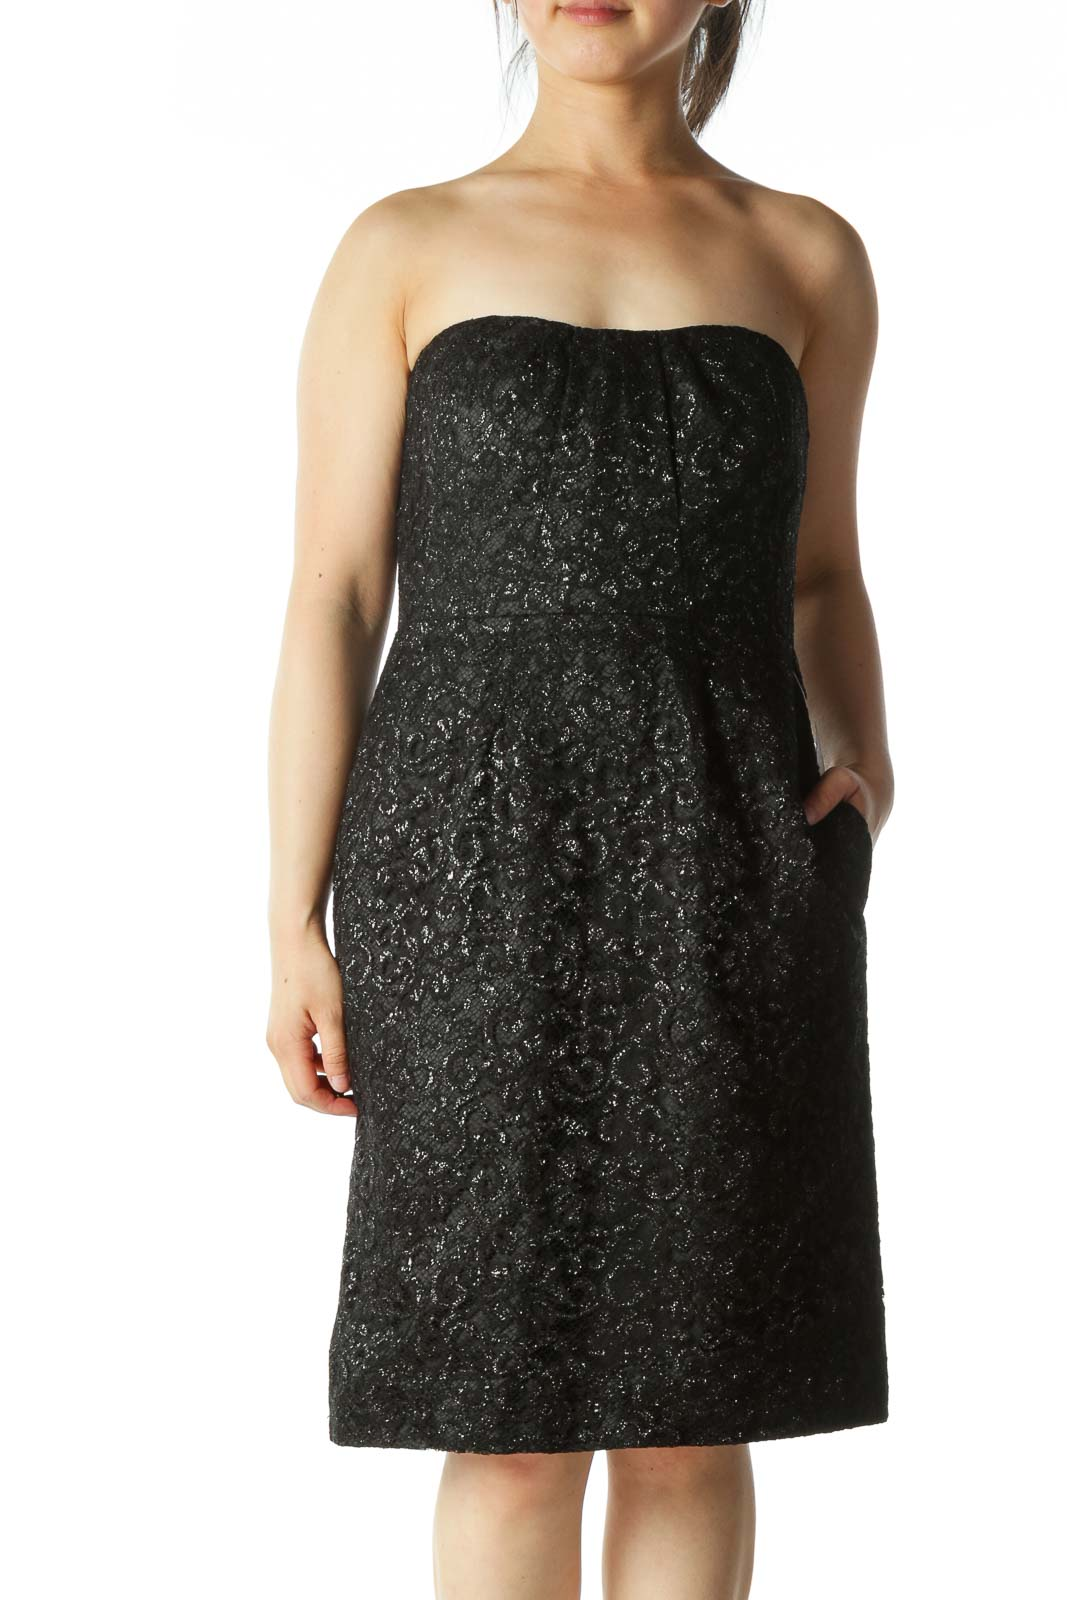 Black and Metallic Strapless Cocktail Dress